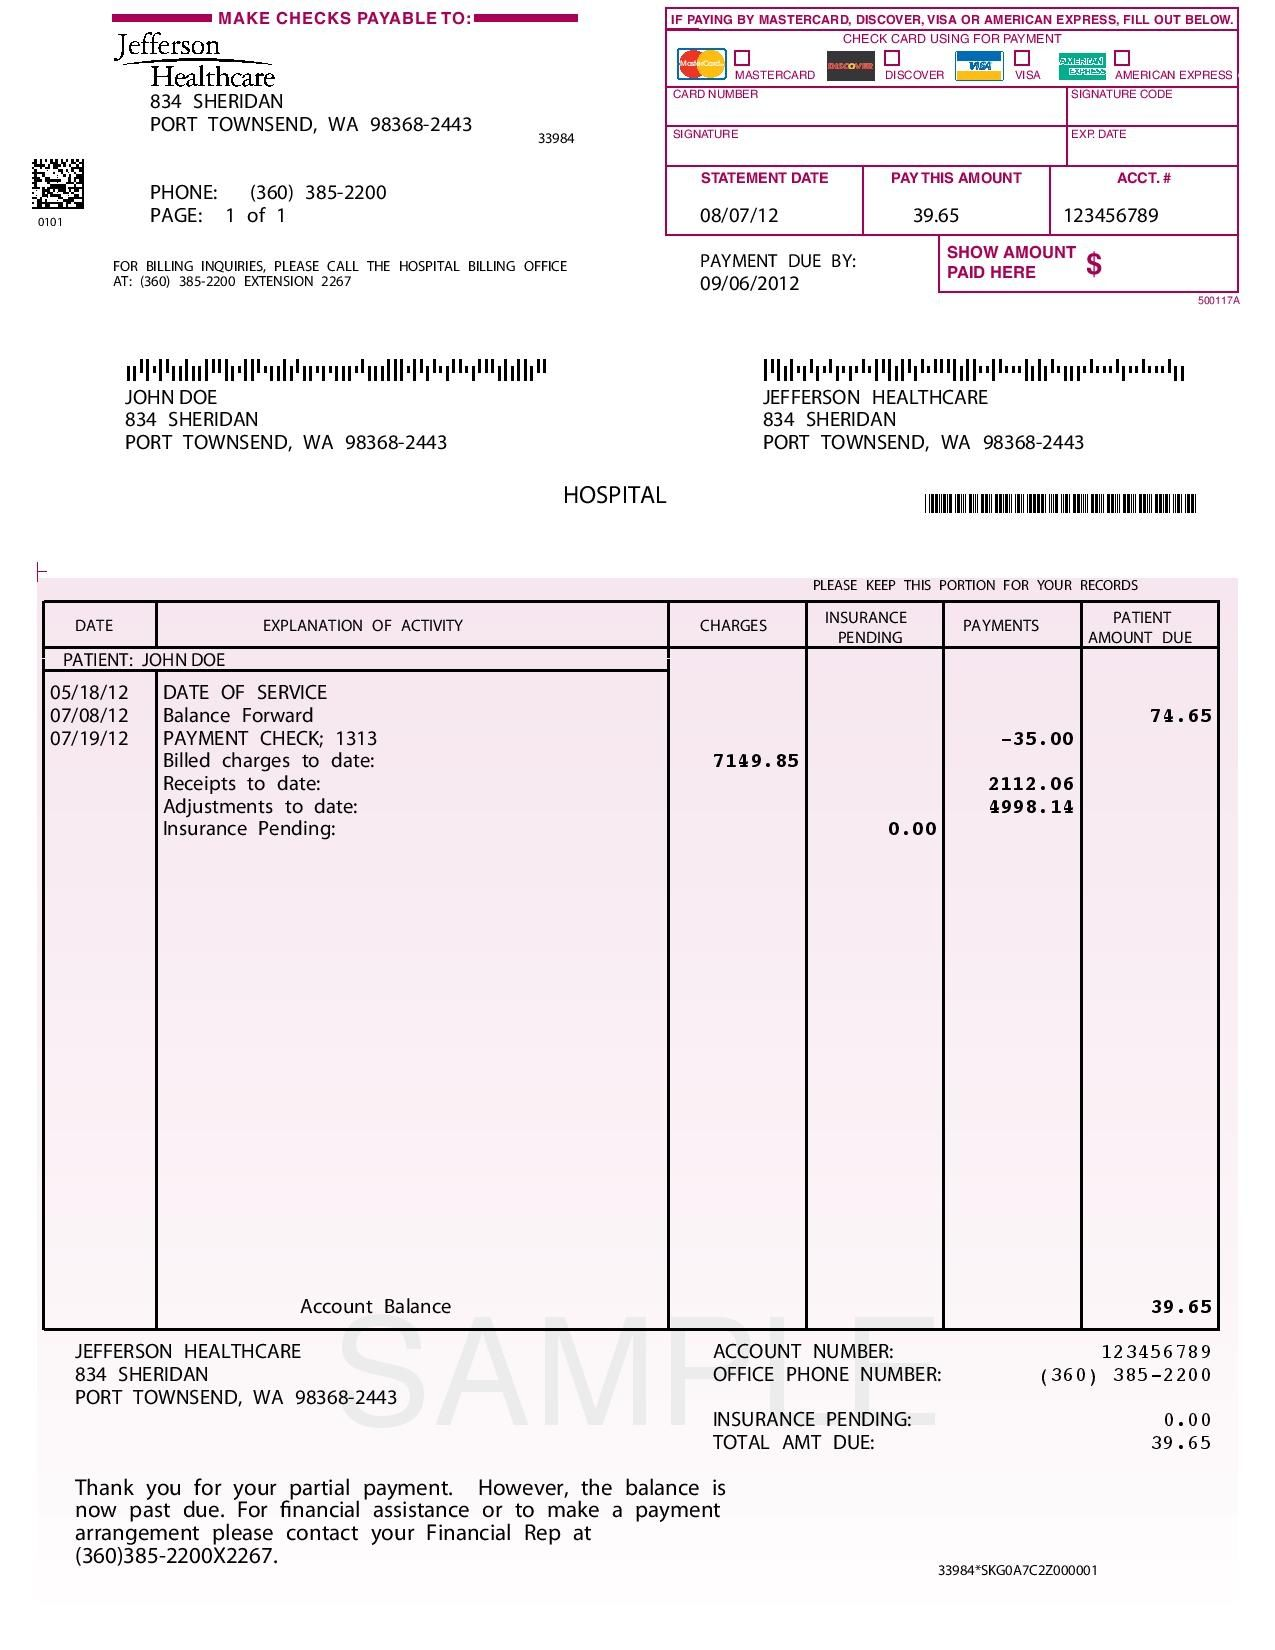 Best Images Of Sample Of Invoice For Payment Sample Invoice - Repair invoices template free best online jewelry store